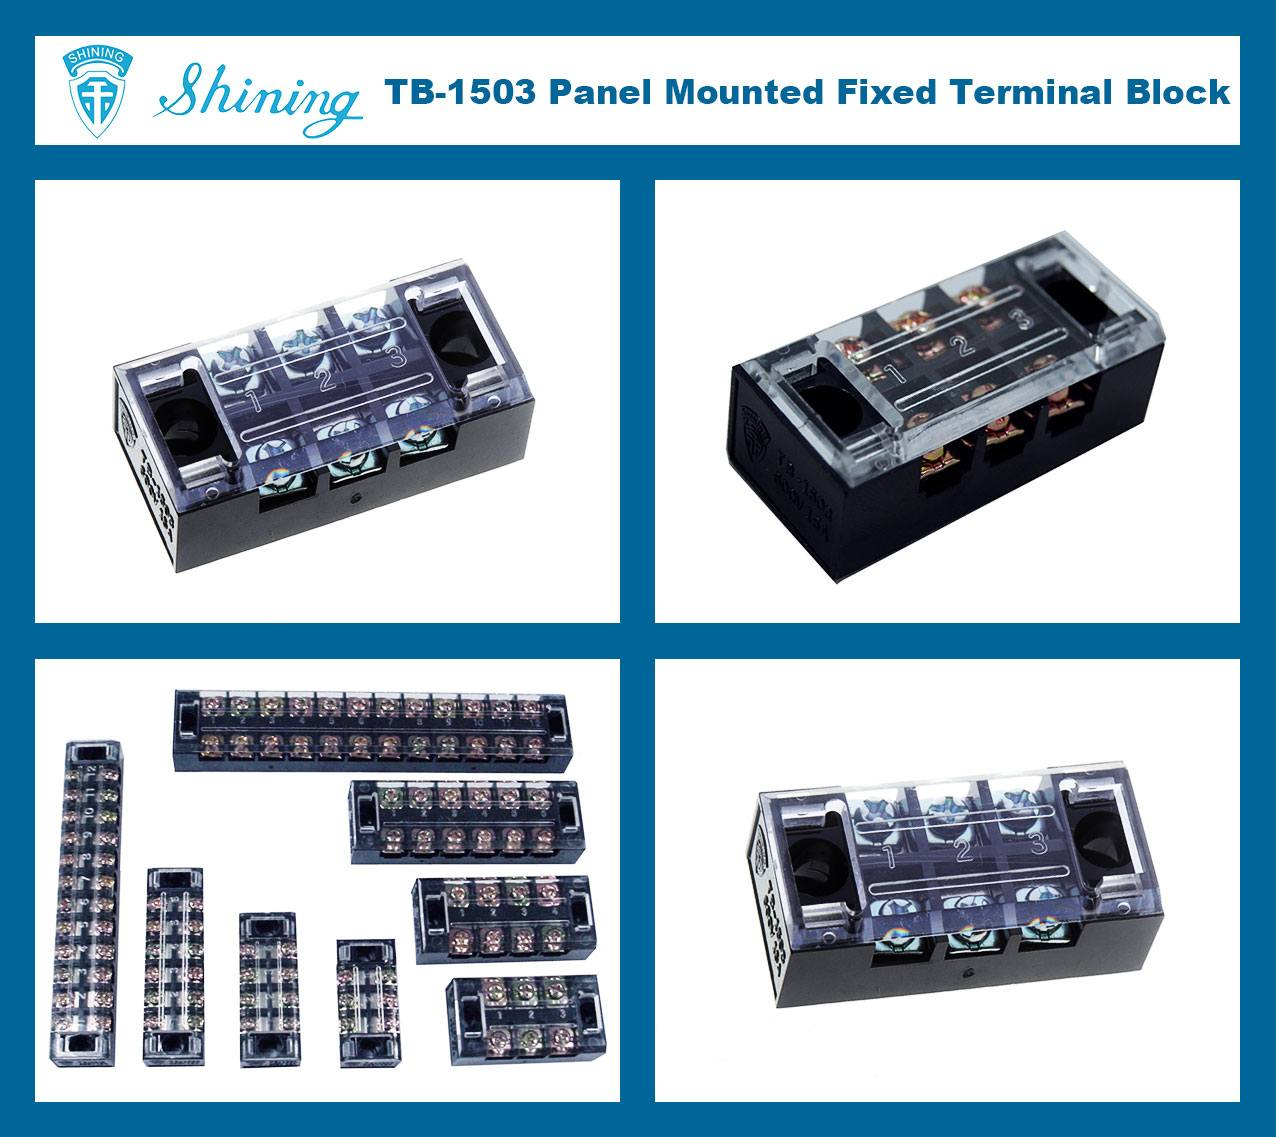 TB-1503 Panel Mounted Fixed Barrier 15A 3 Pole Terminal Block